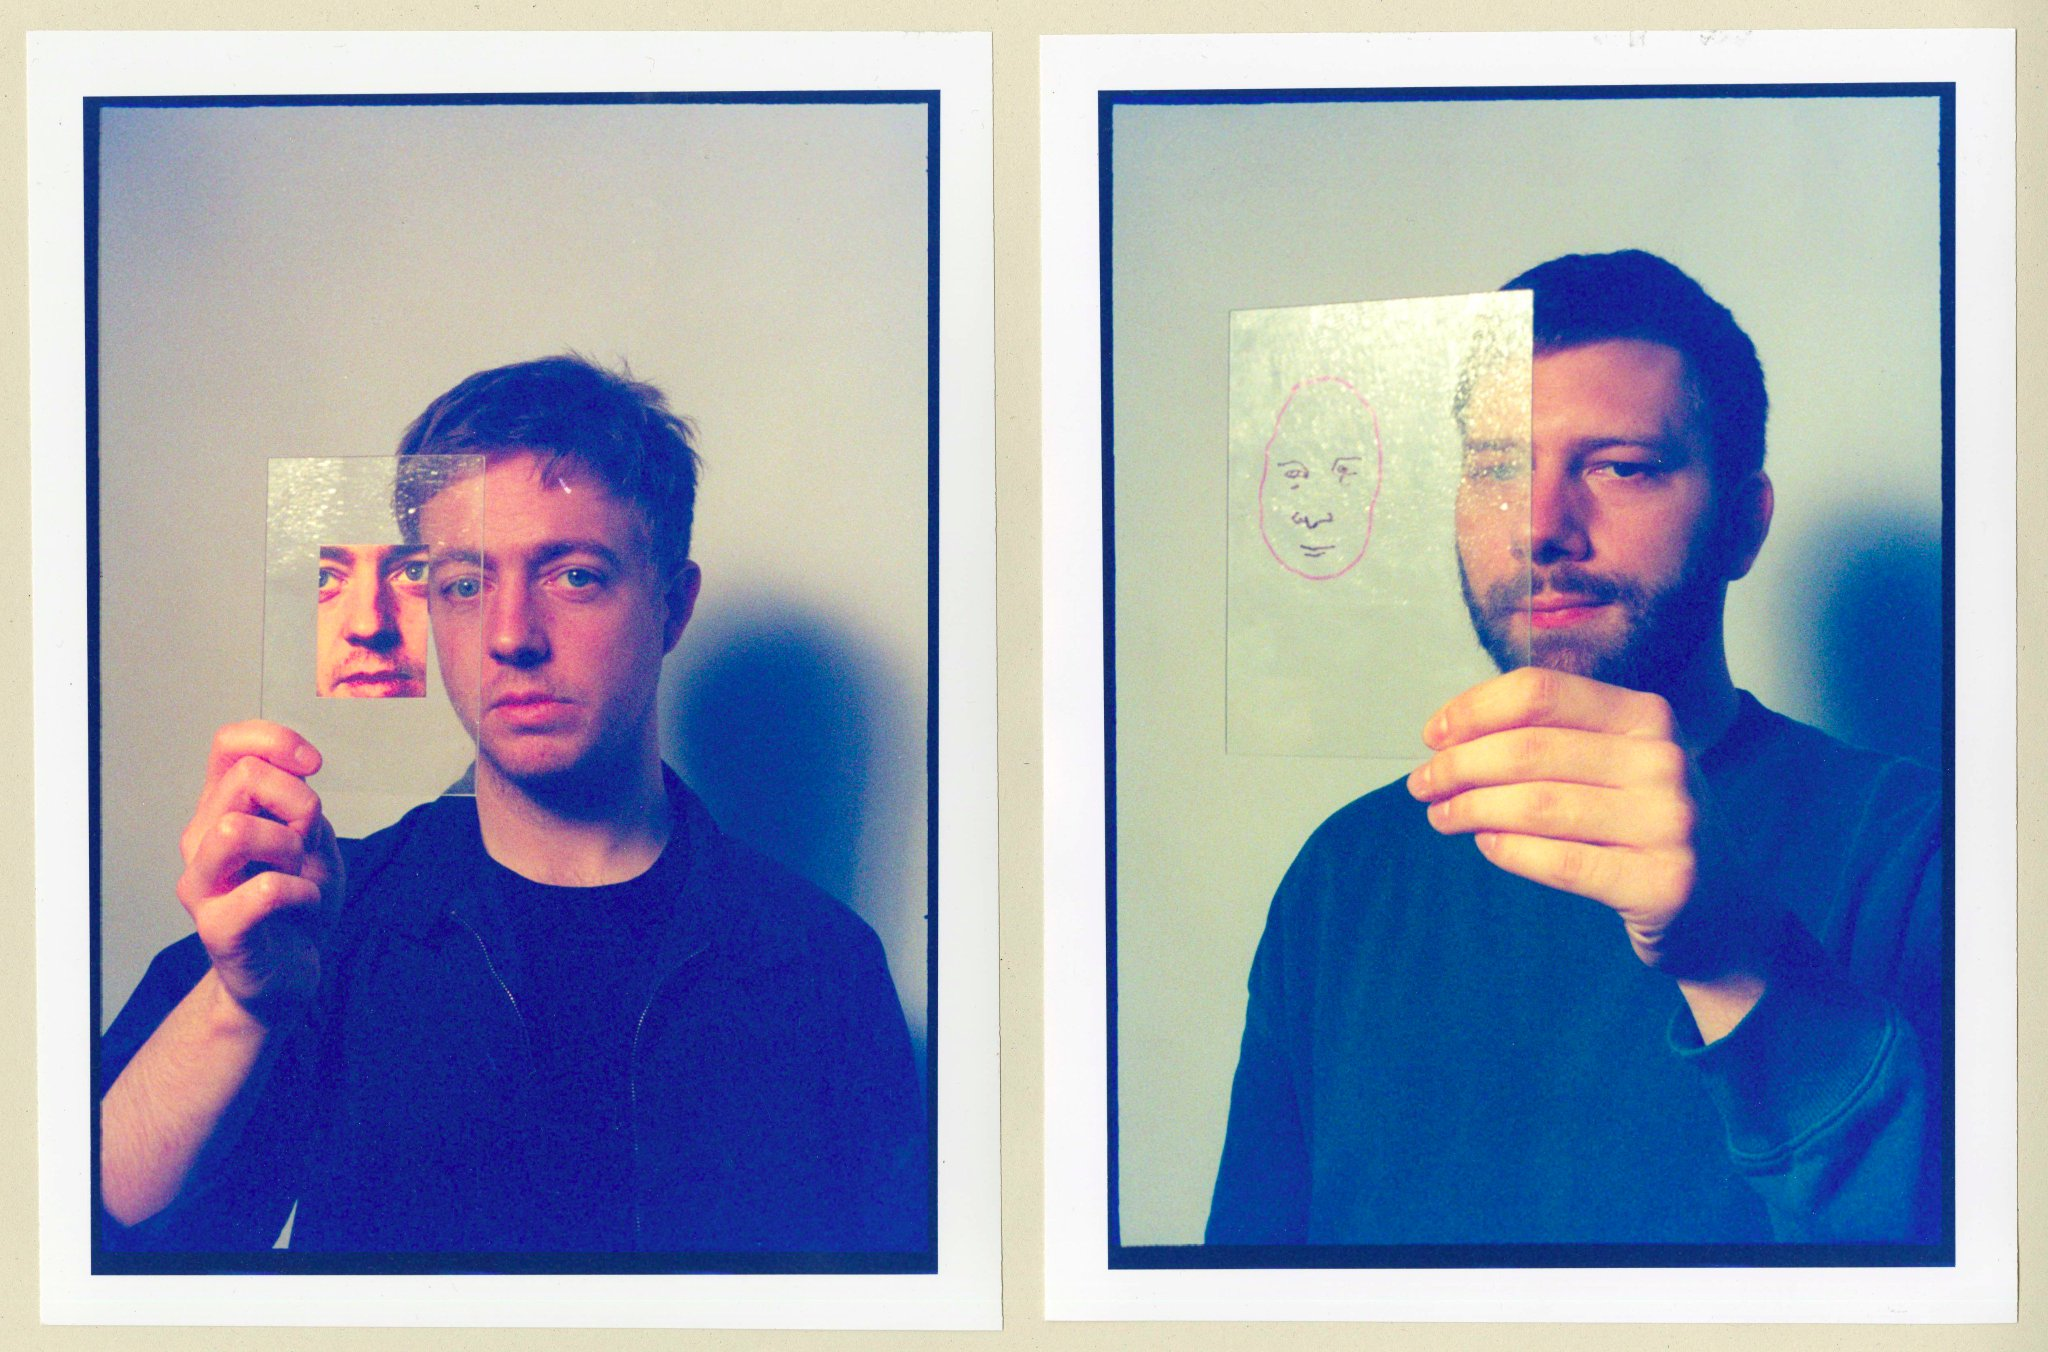 .@mountkimbie are freer than ever. https://t.co/gI1CLmwxBF https://t.co/UlhMd2dhf5